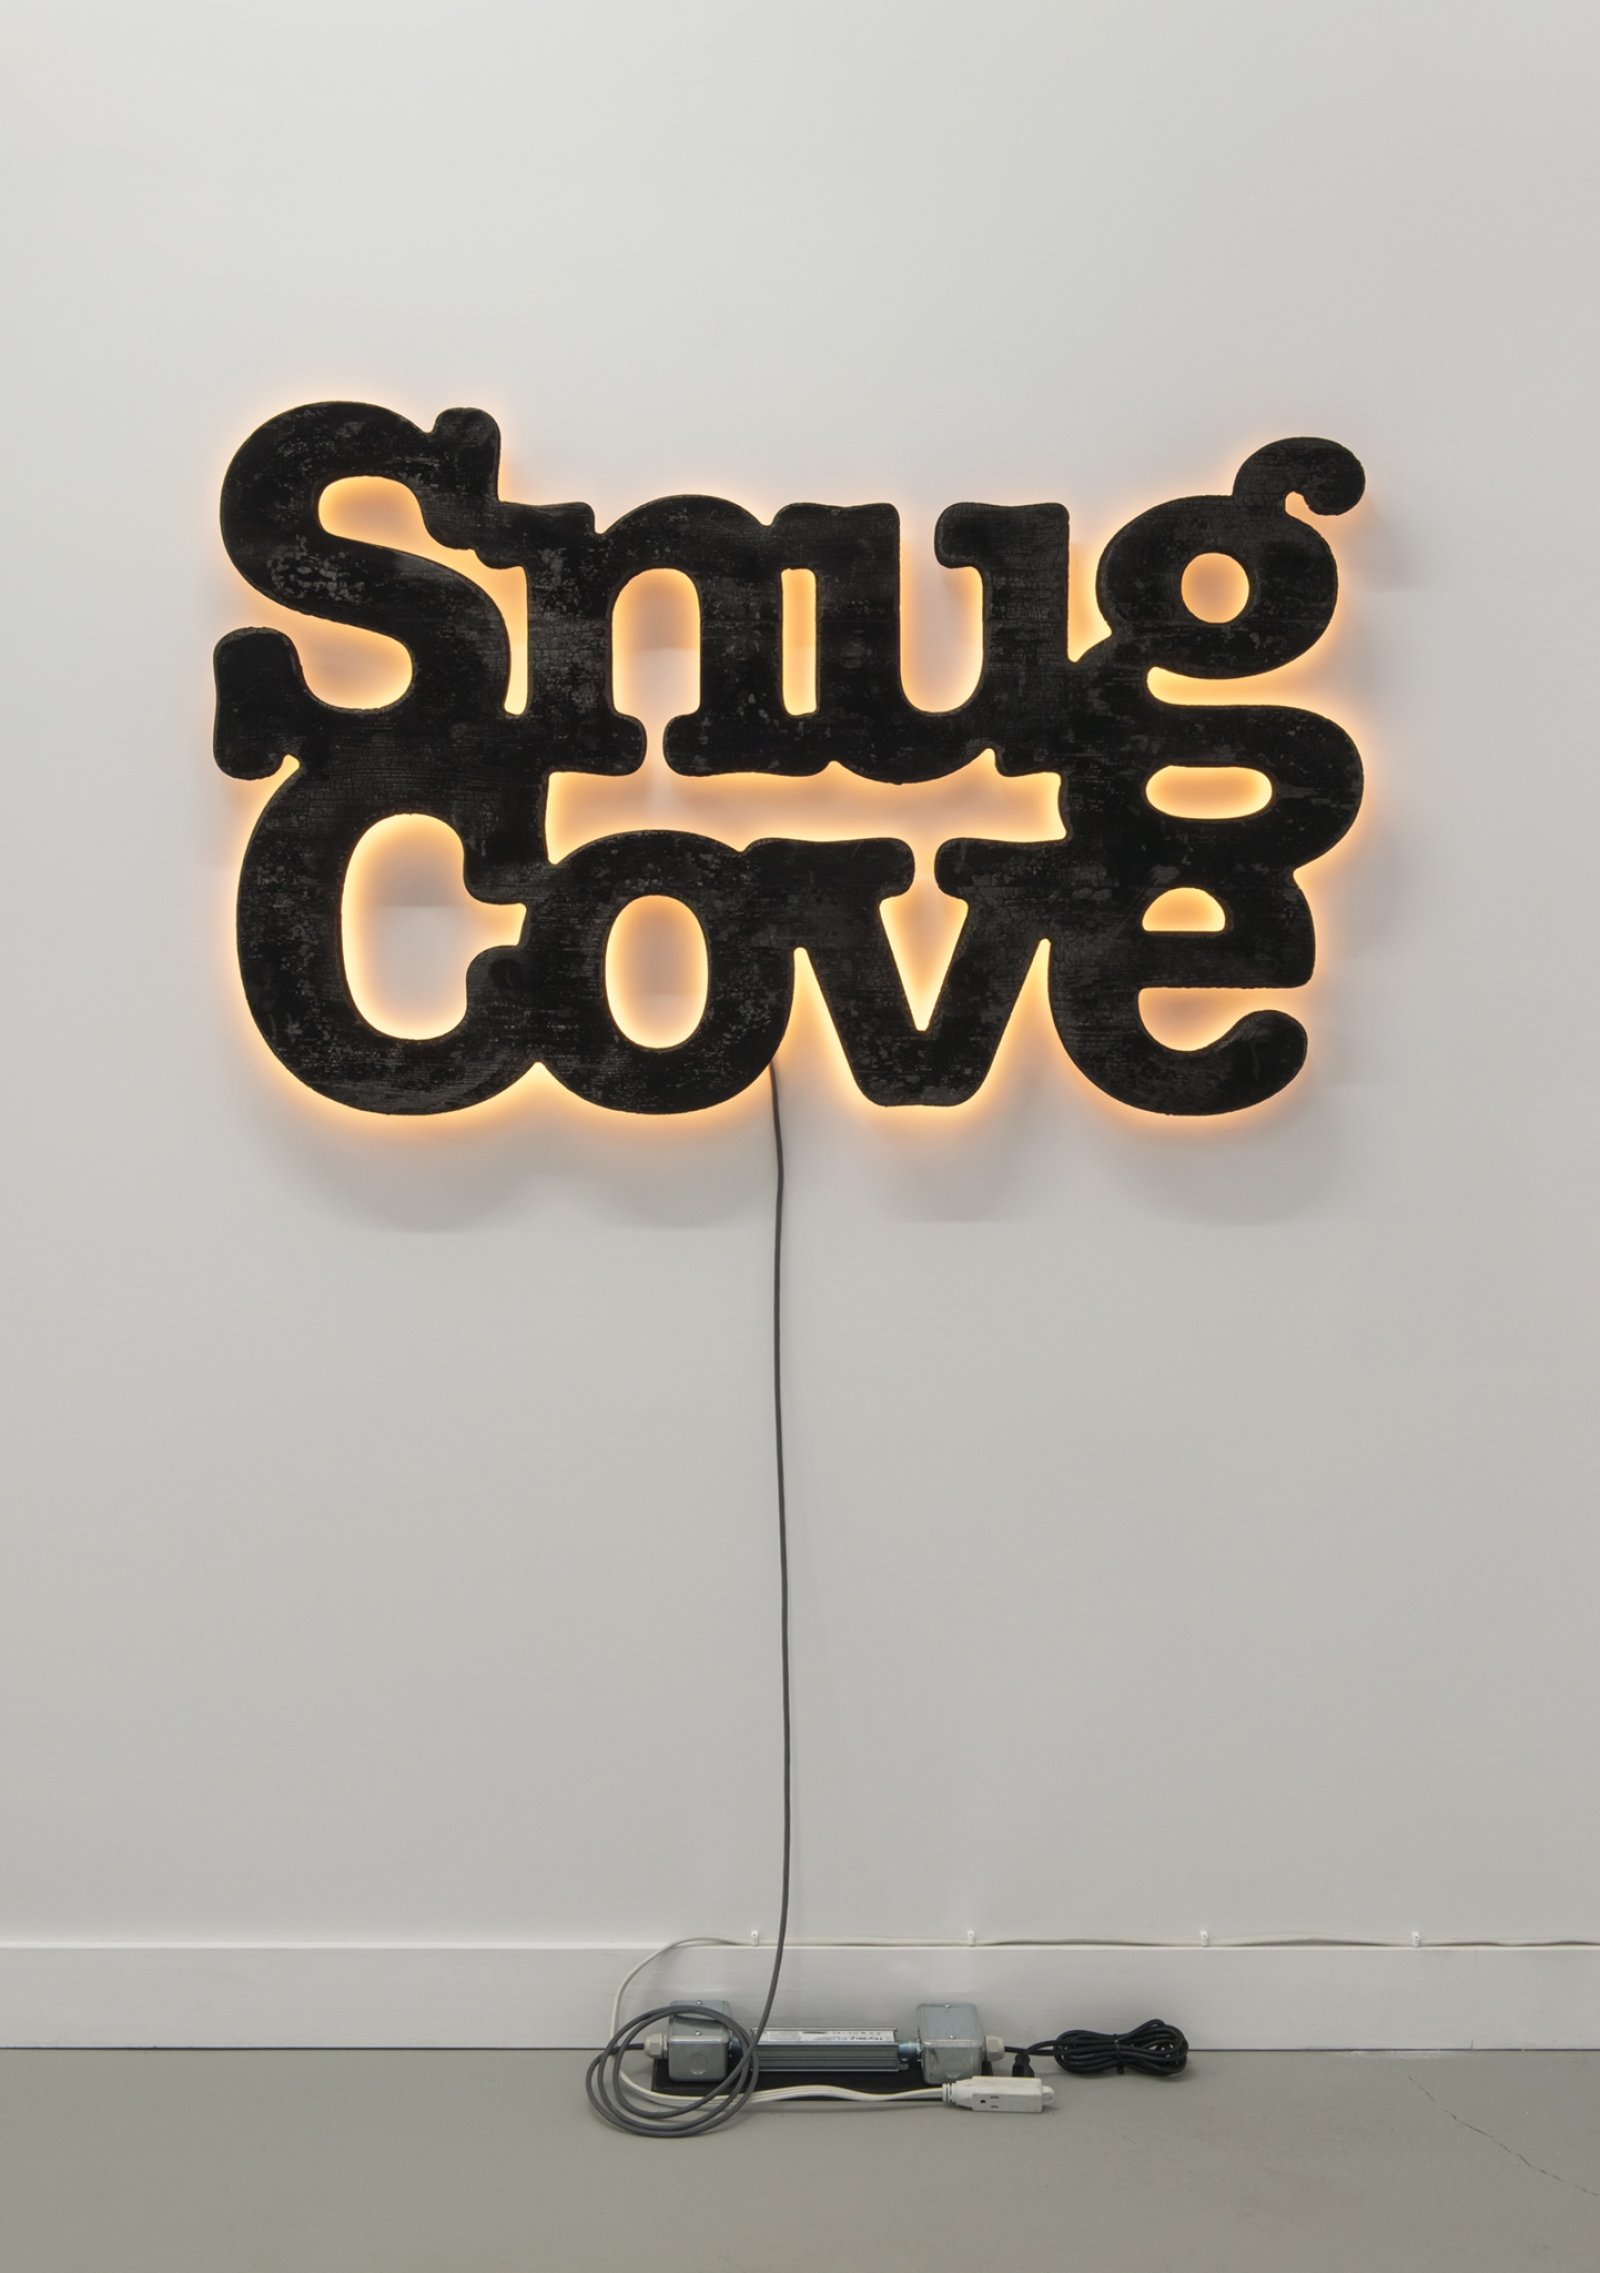 Ron Terada, Snug Cove, 2018, charred cedar, led, electronics, 30 x 48 in. (76 x 121 cm)